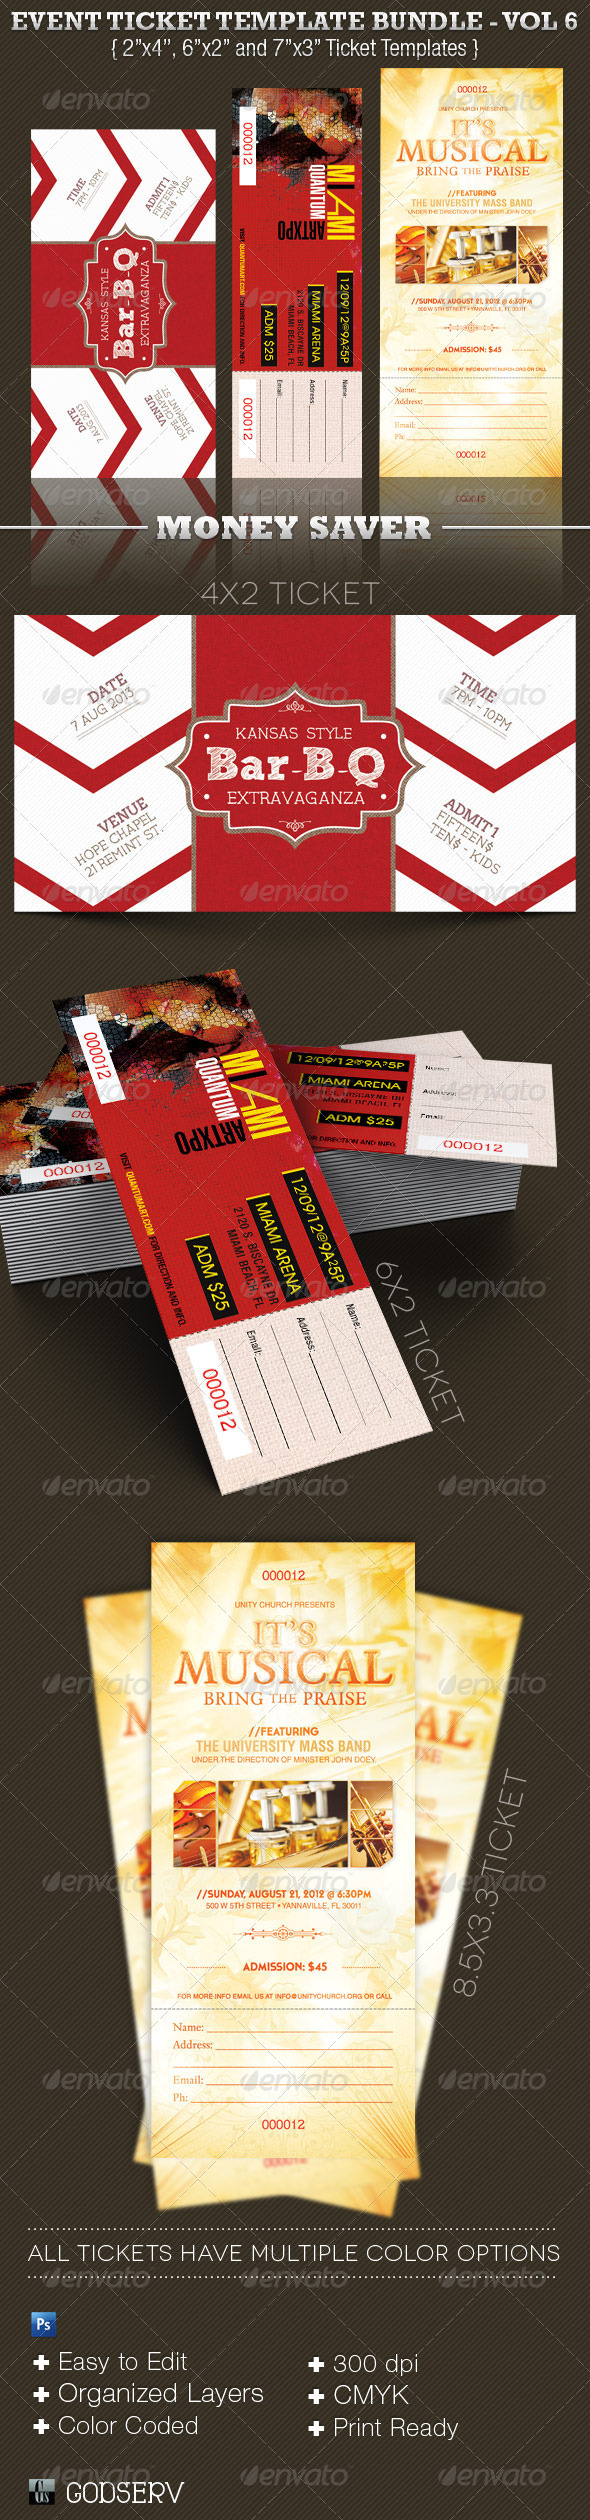 Event Ticket Template Bundle Volume 7 - Miscellaneous Print Templates